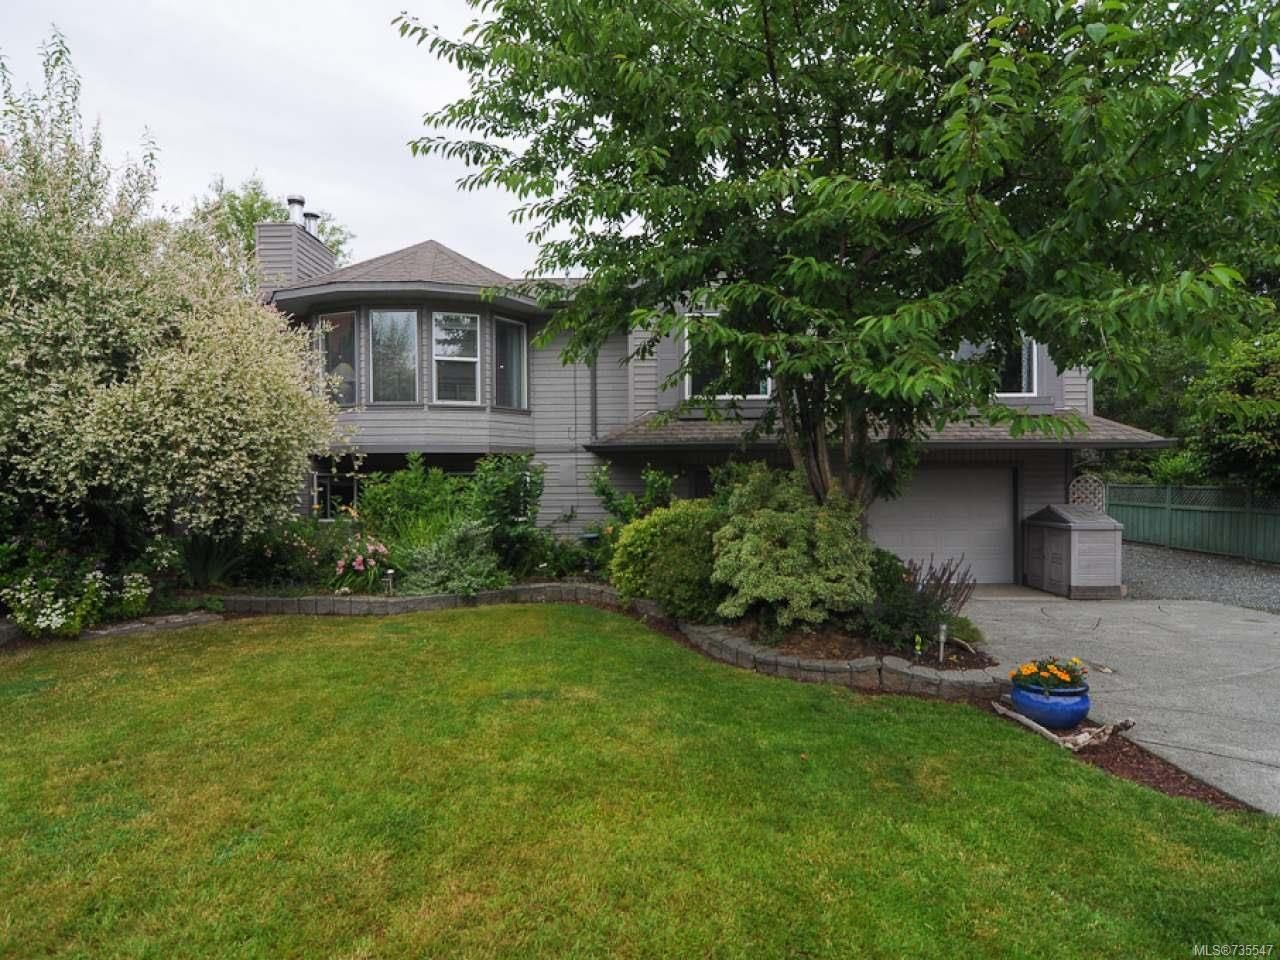 Main Photo: 1250 22nd St in COURTENAY: CV Courtenay City House for sale (Comox Valley)  : MLS®# 735547